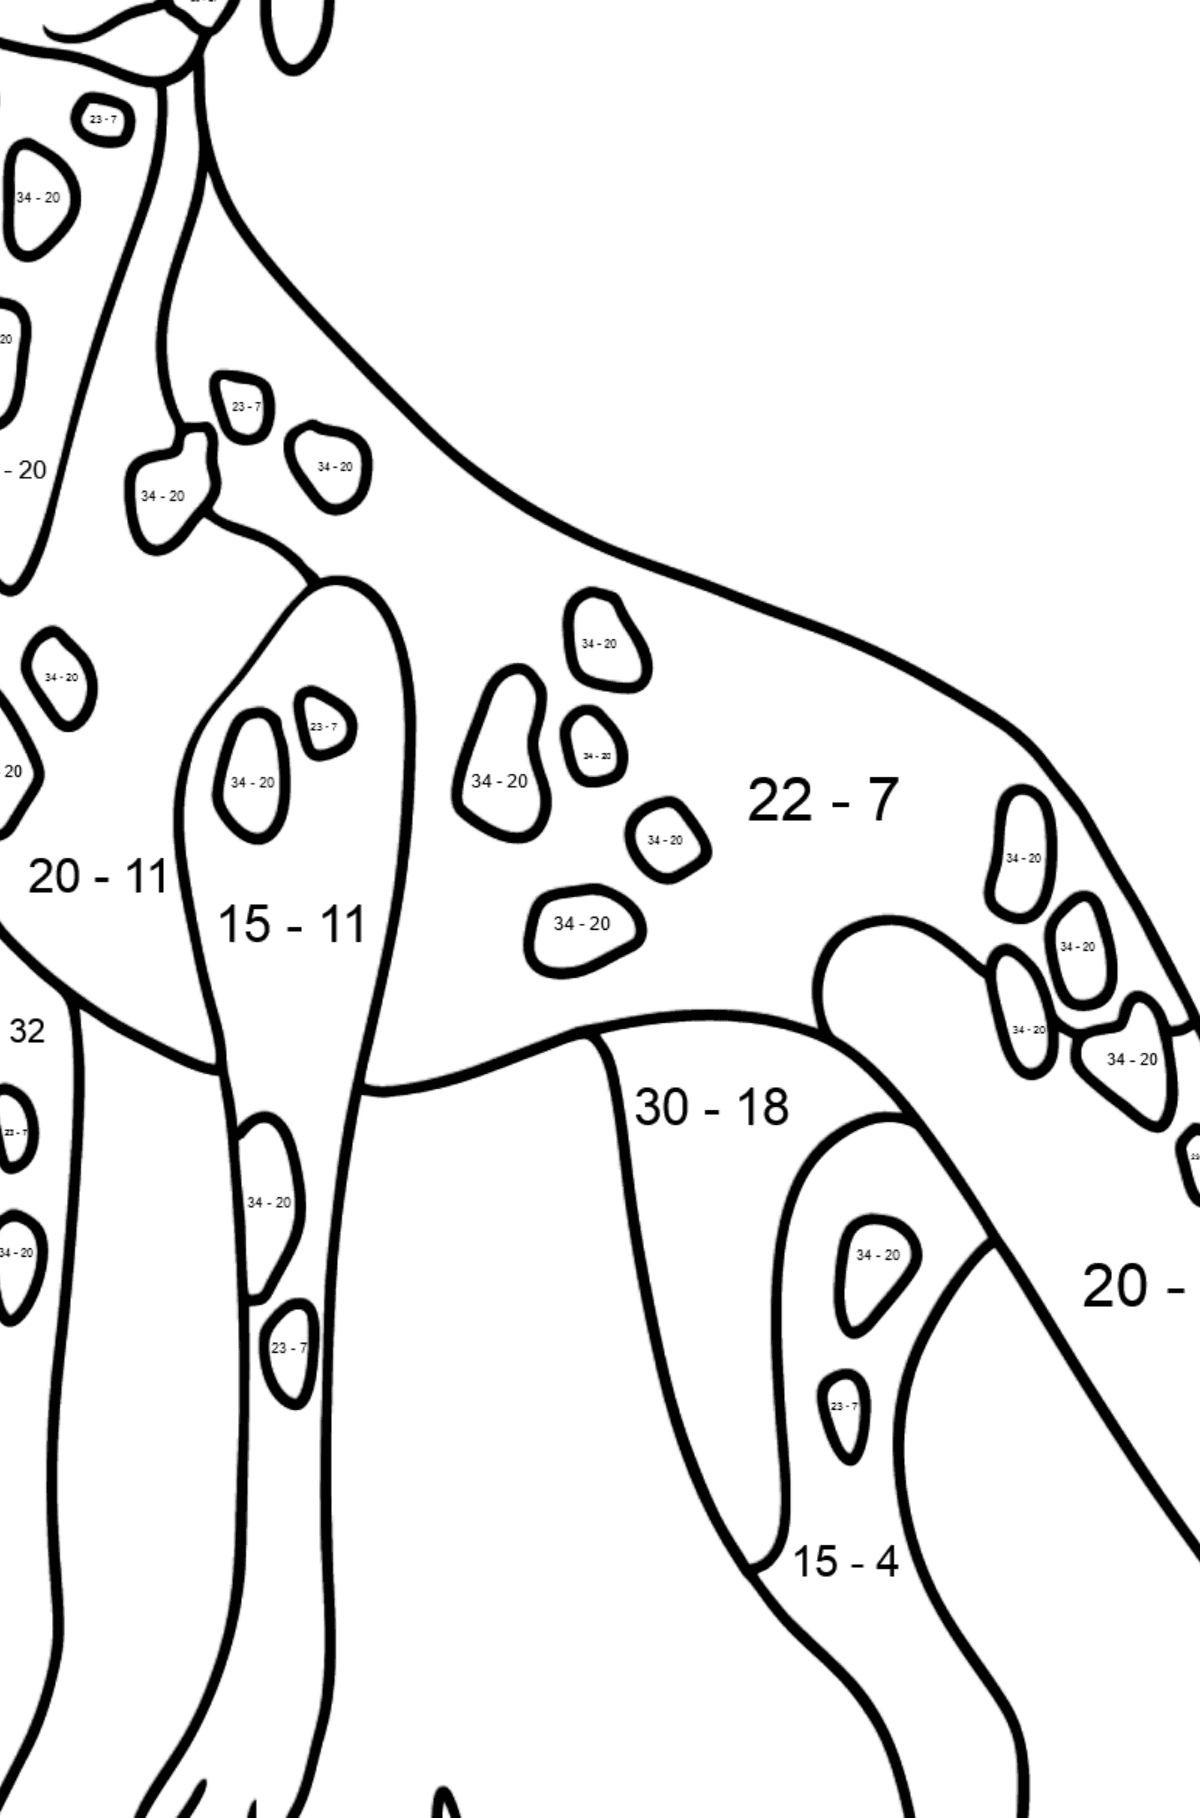 Dalmatian coloring page - Math Coloring - Subtraction for Kids